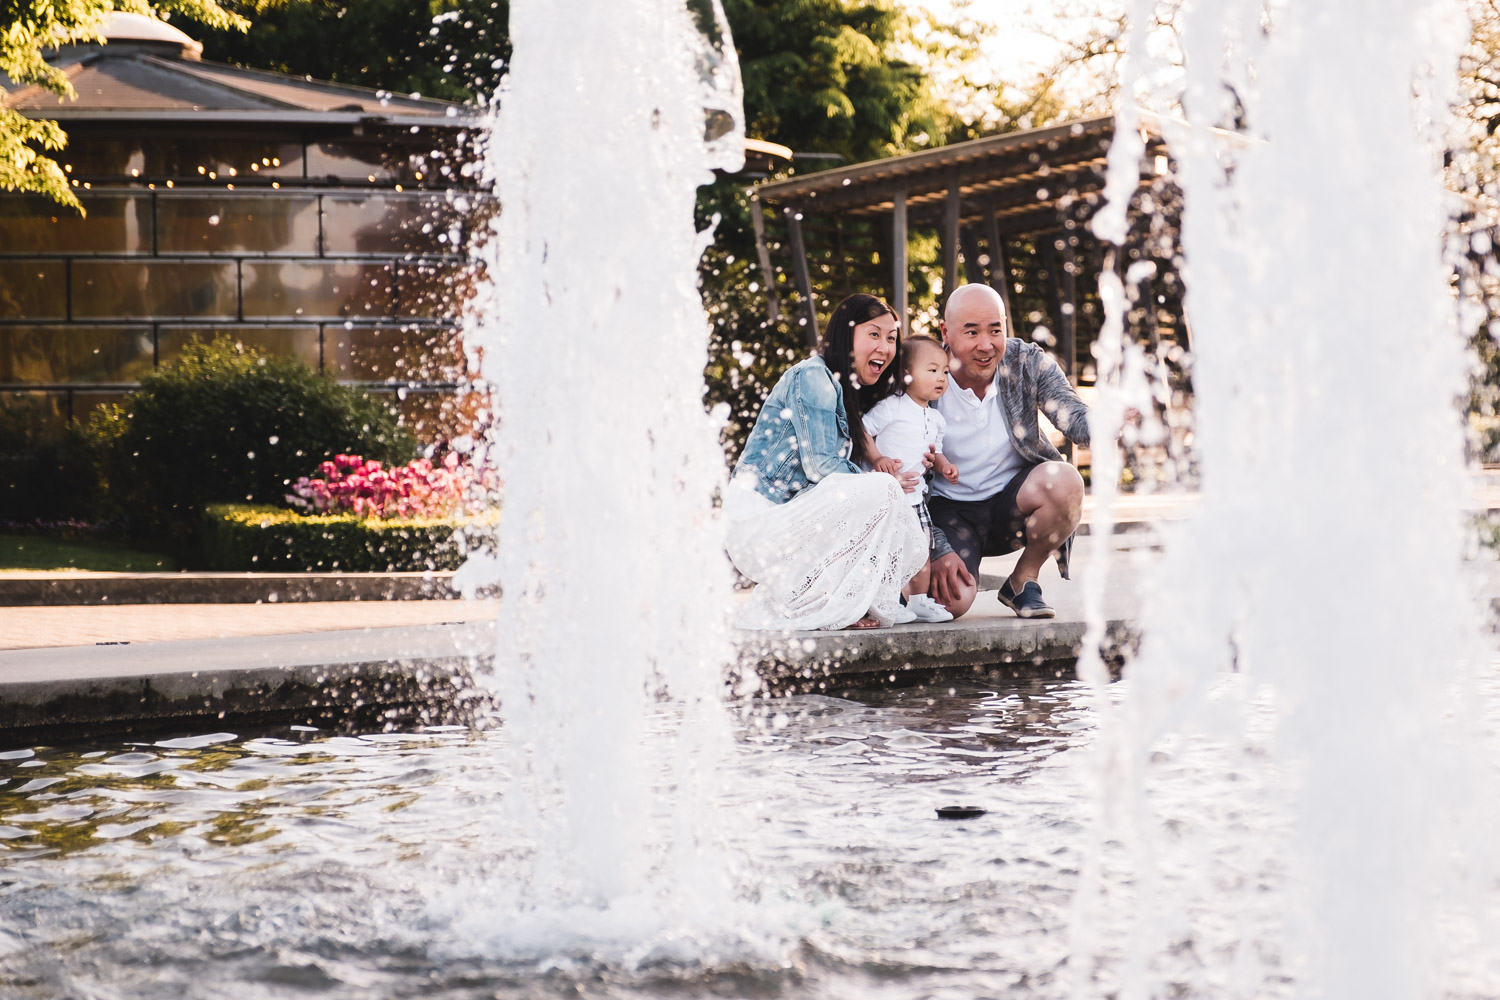 Family-Photography-Vancouver-Outdoors